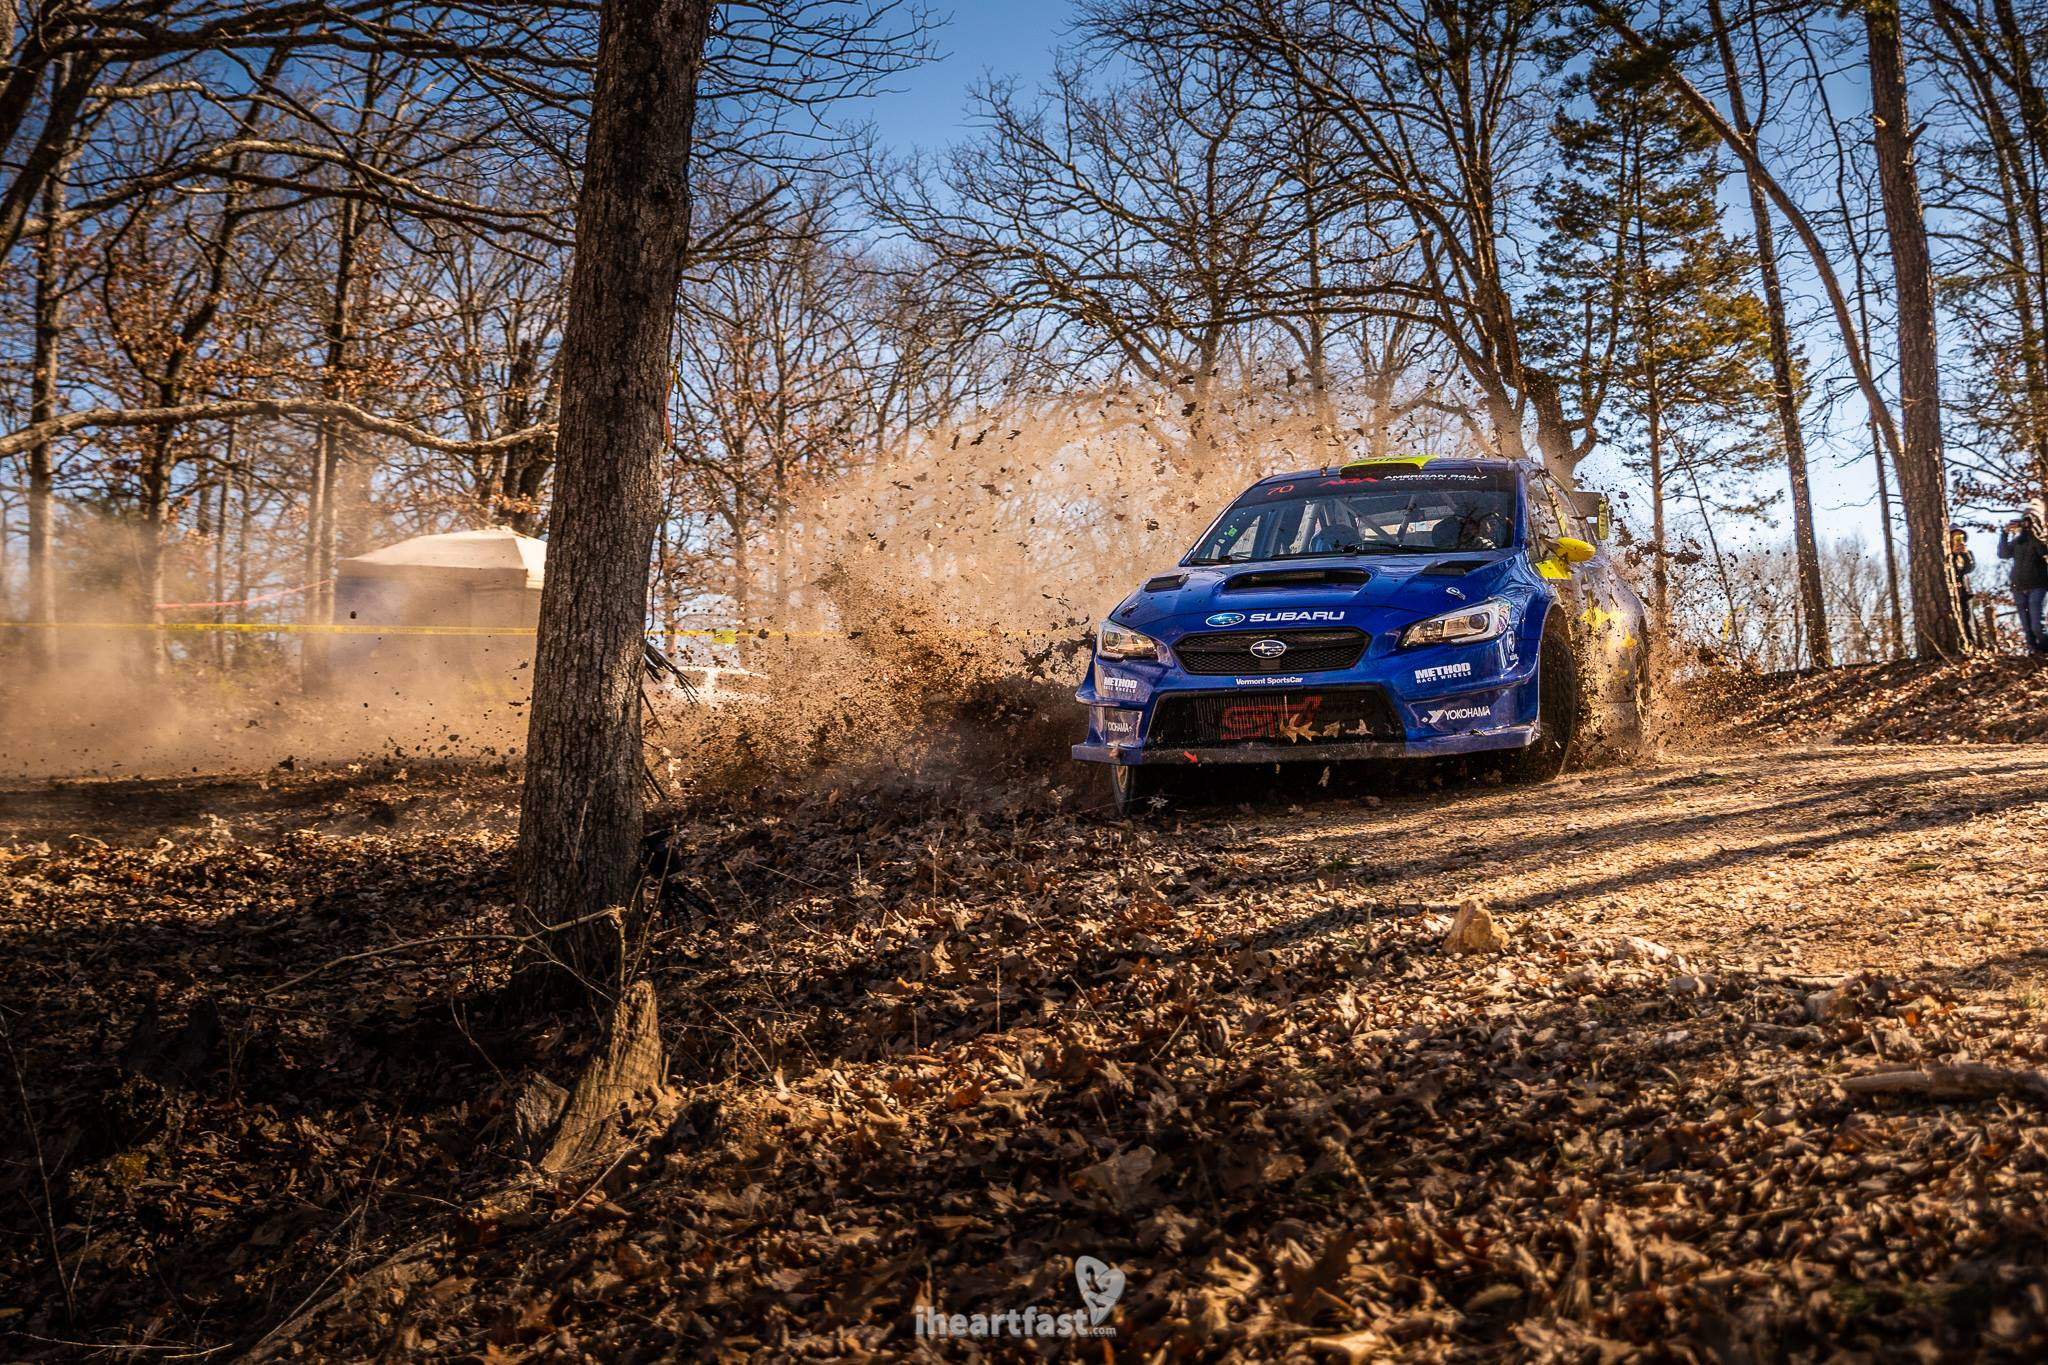 Oliver Solberg getting sideways at his first event with Subaru Motorsports.